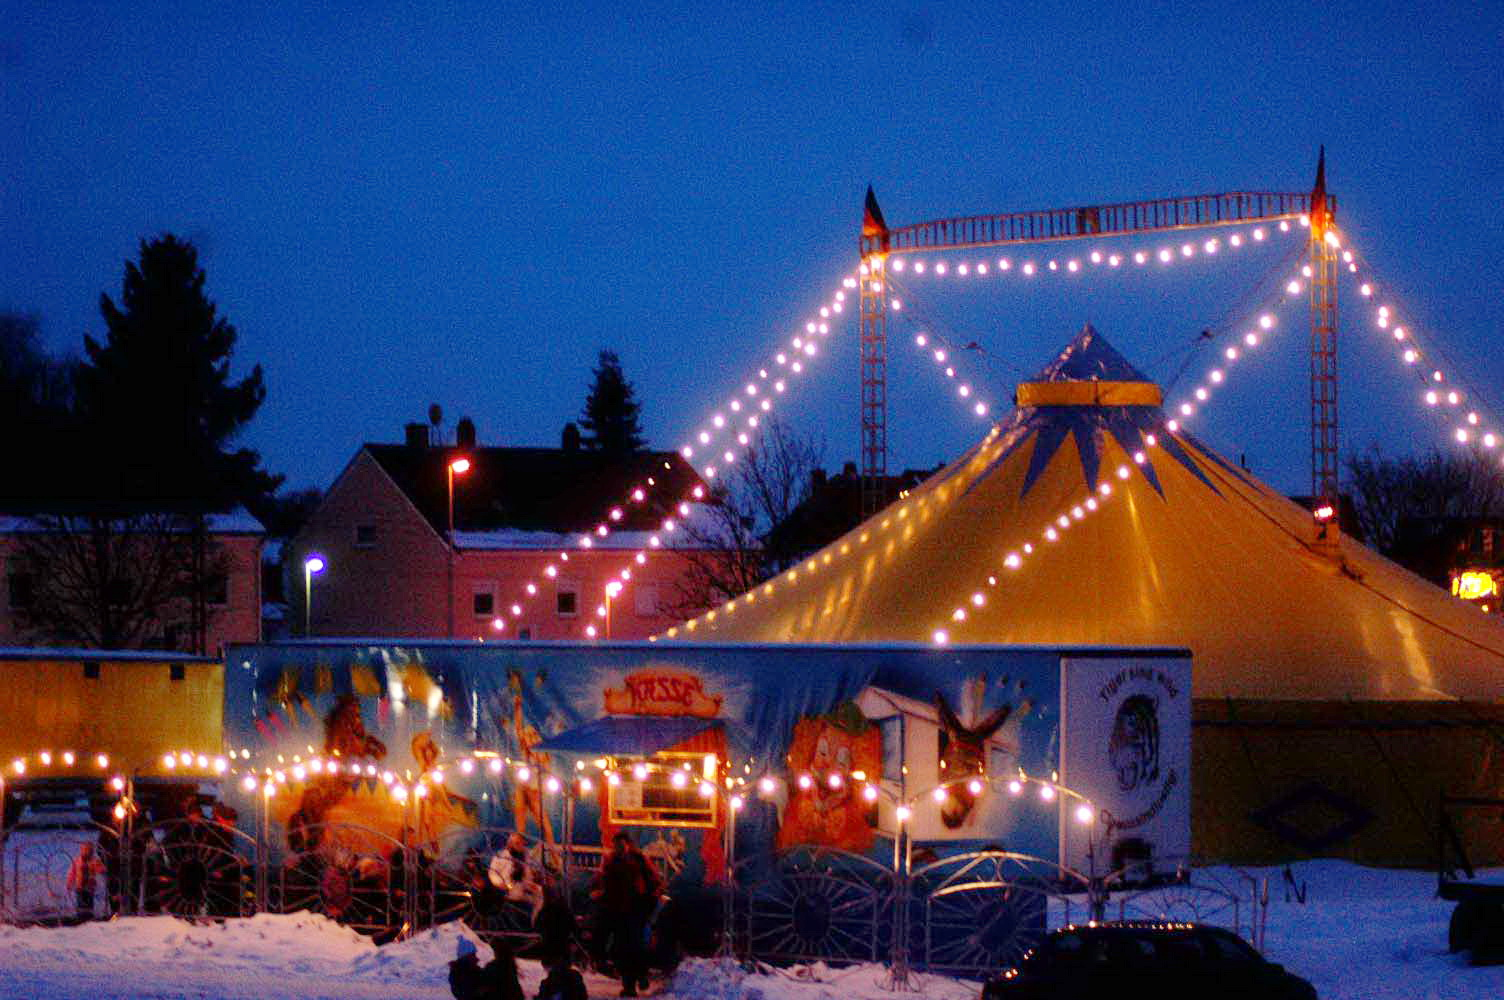 Circus Renz Weihnachtscircus in Oberursel